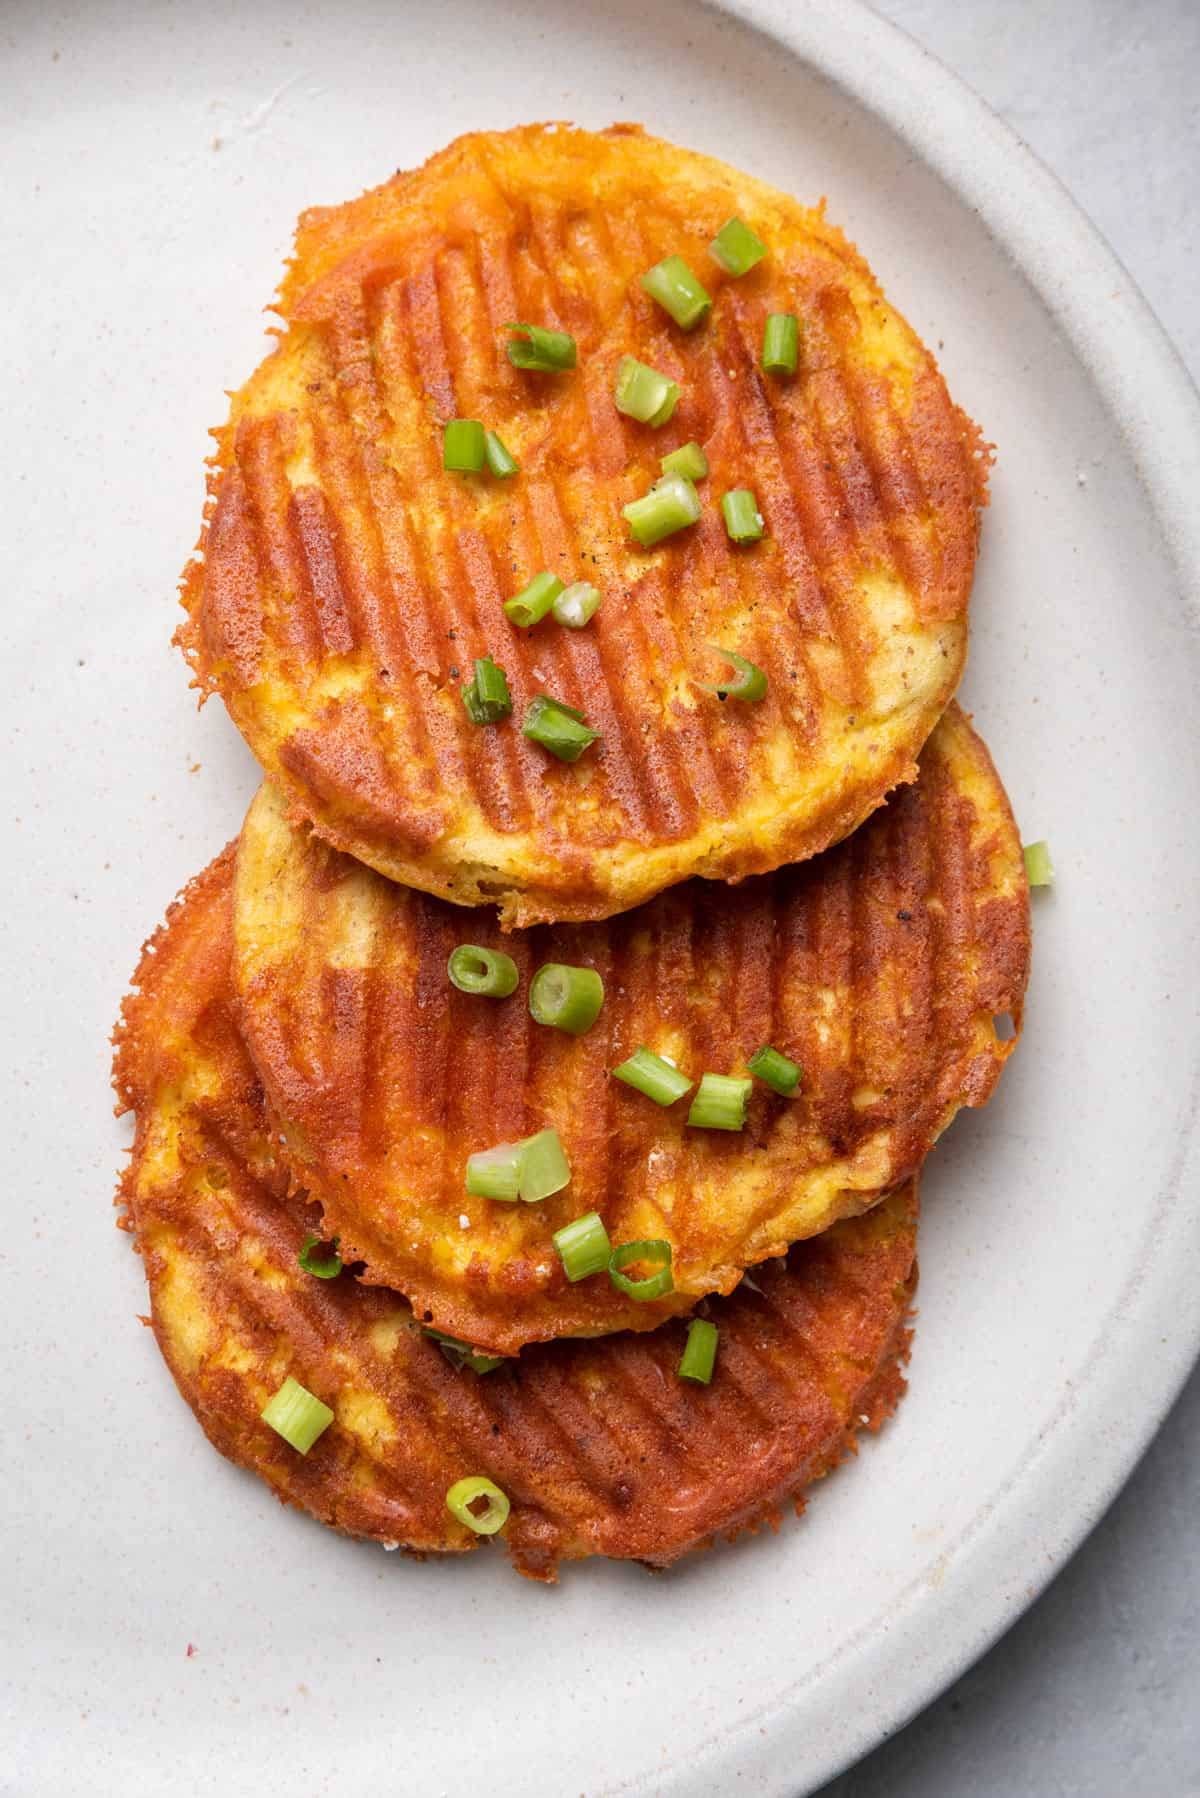 3 stacked chaffles on top of each other on a plate garnished with green onions